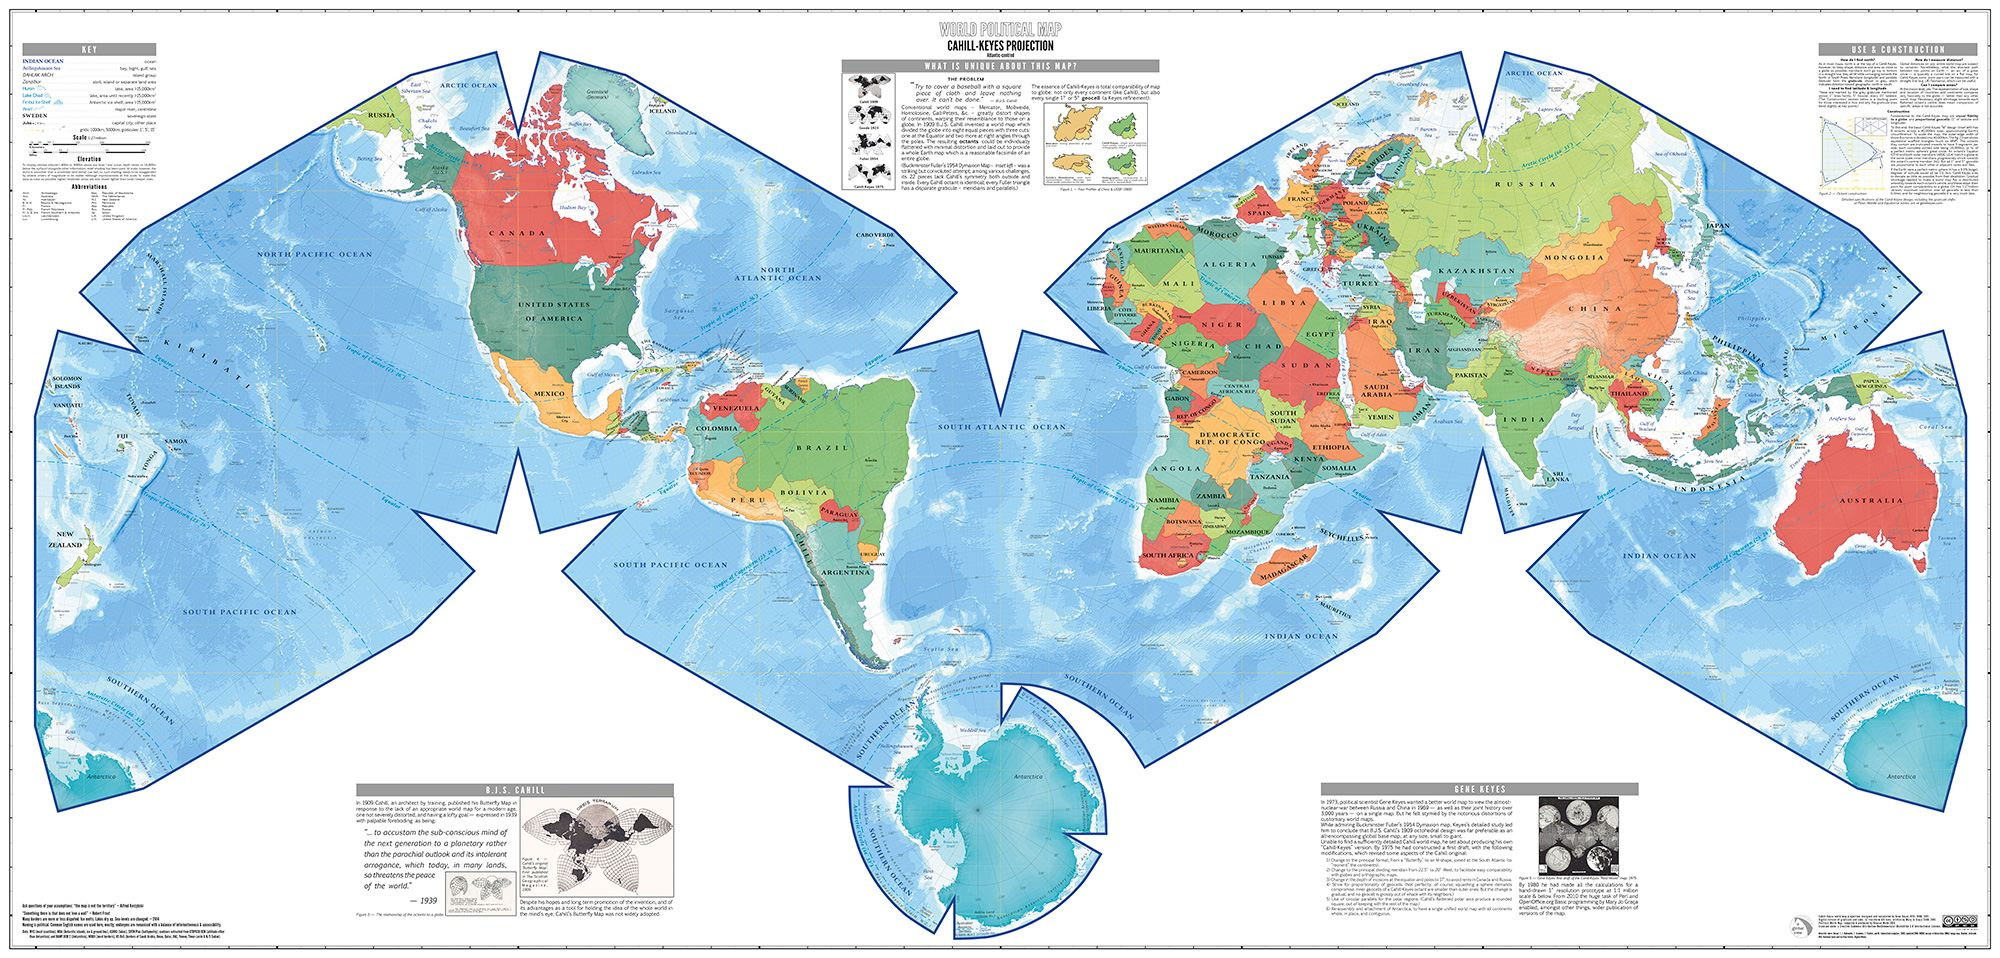 1975 cahill keyes world map projection 2000 x 958 mapporn 1975 cahill keyes world map projection 2000 x 958 gumiabroncs Choice Image